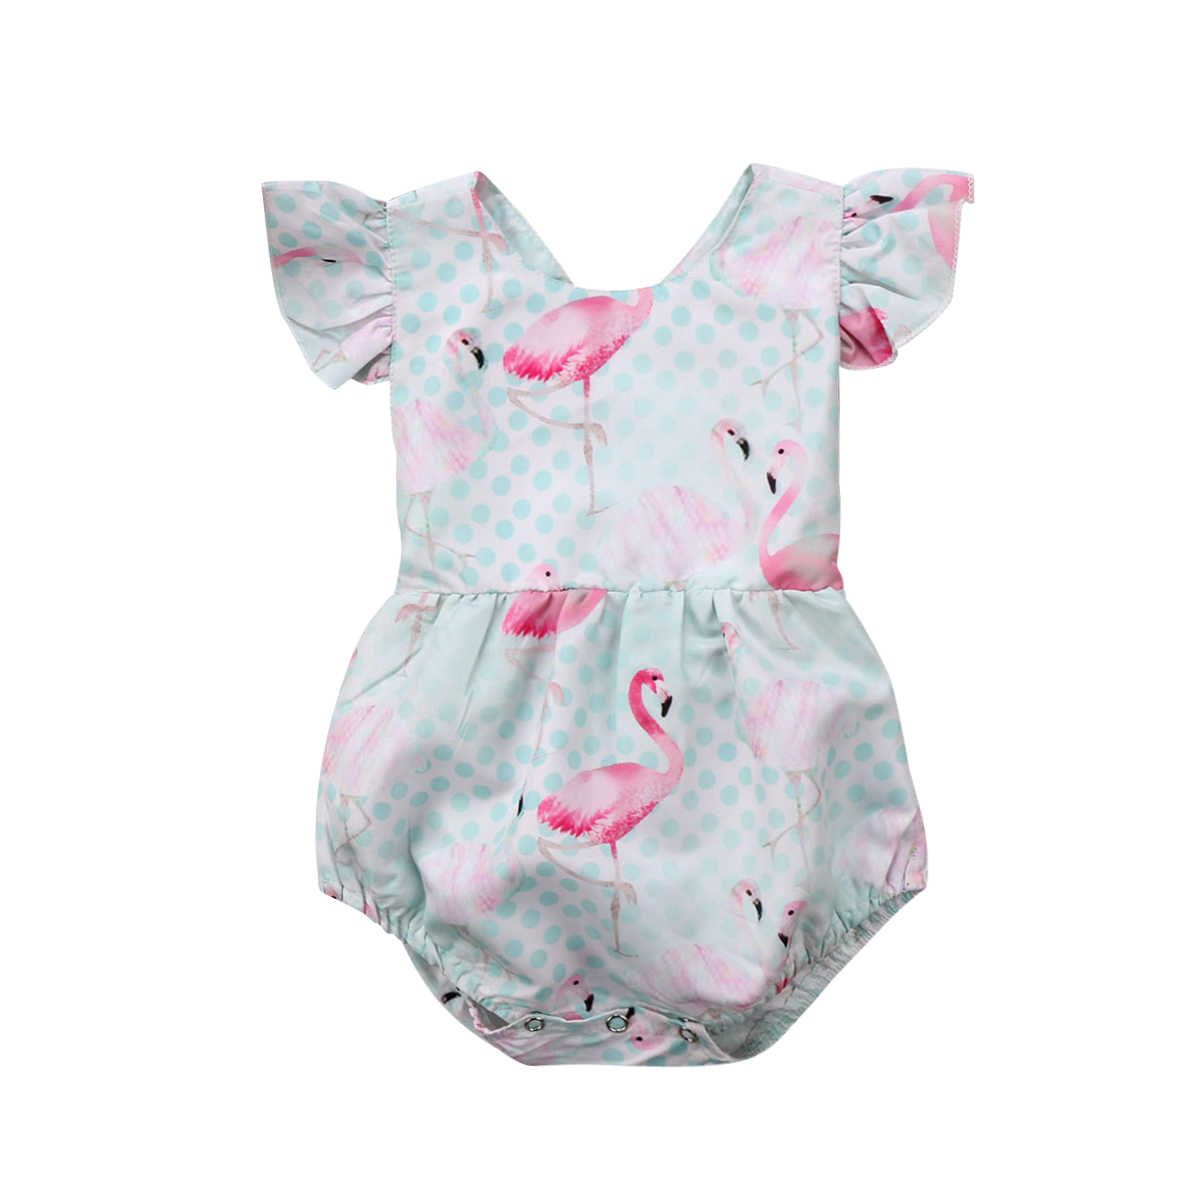 71bb921c6 Newborn Infant Baby Girl Ruffles Romper Flamingo Jumpsuit Sunsuit Summer  Clothes Outfits Baby Clothing